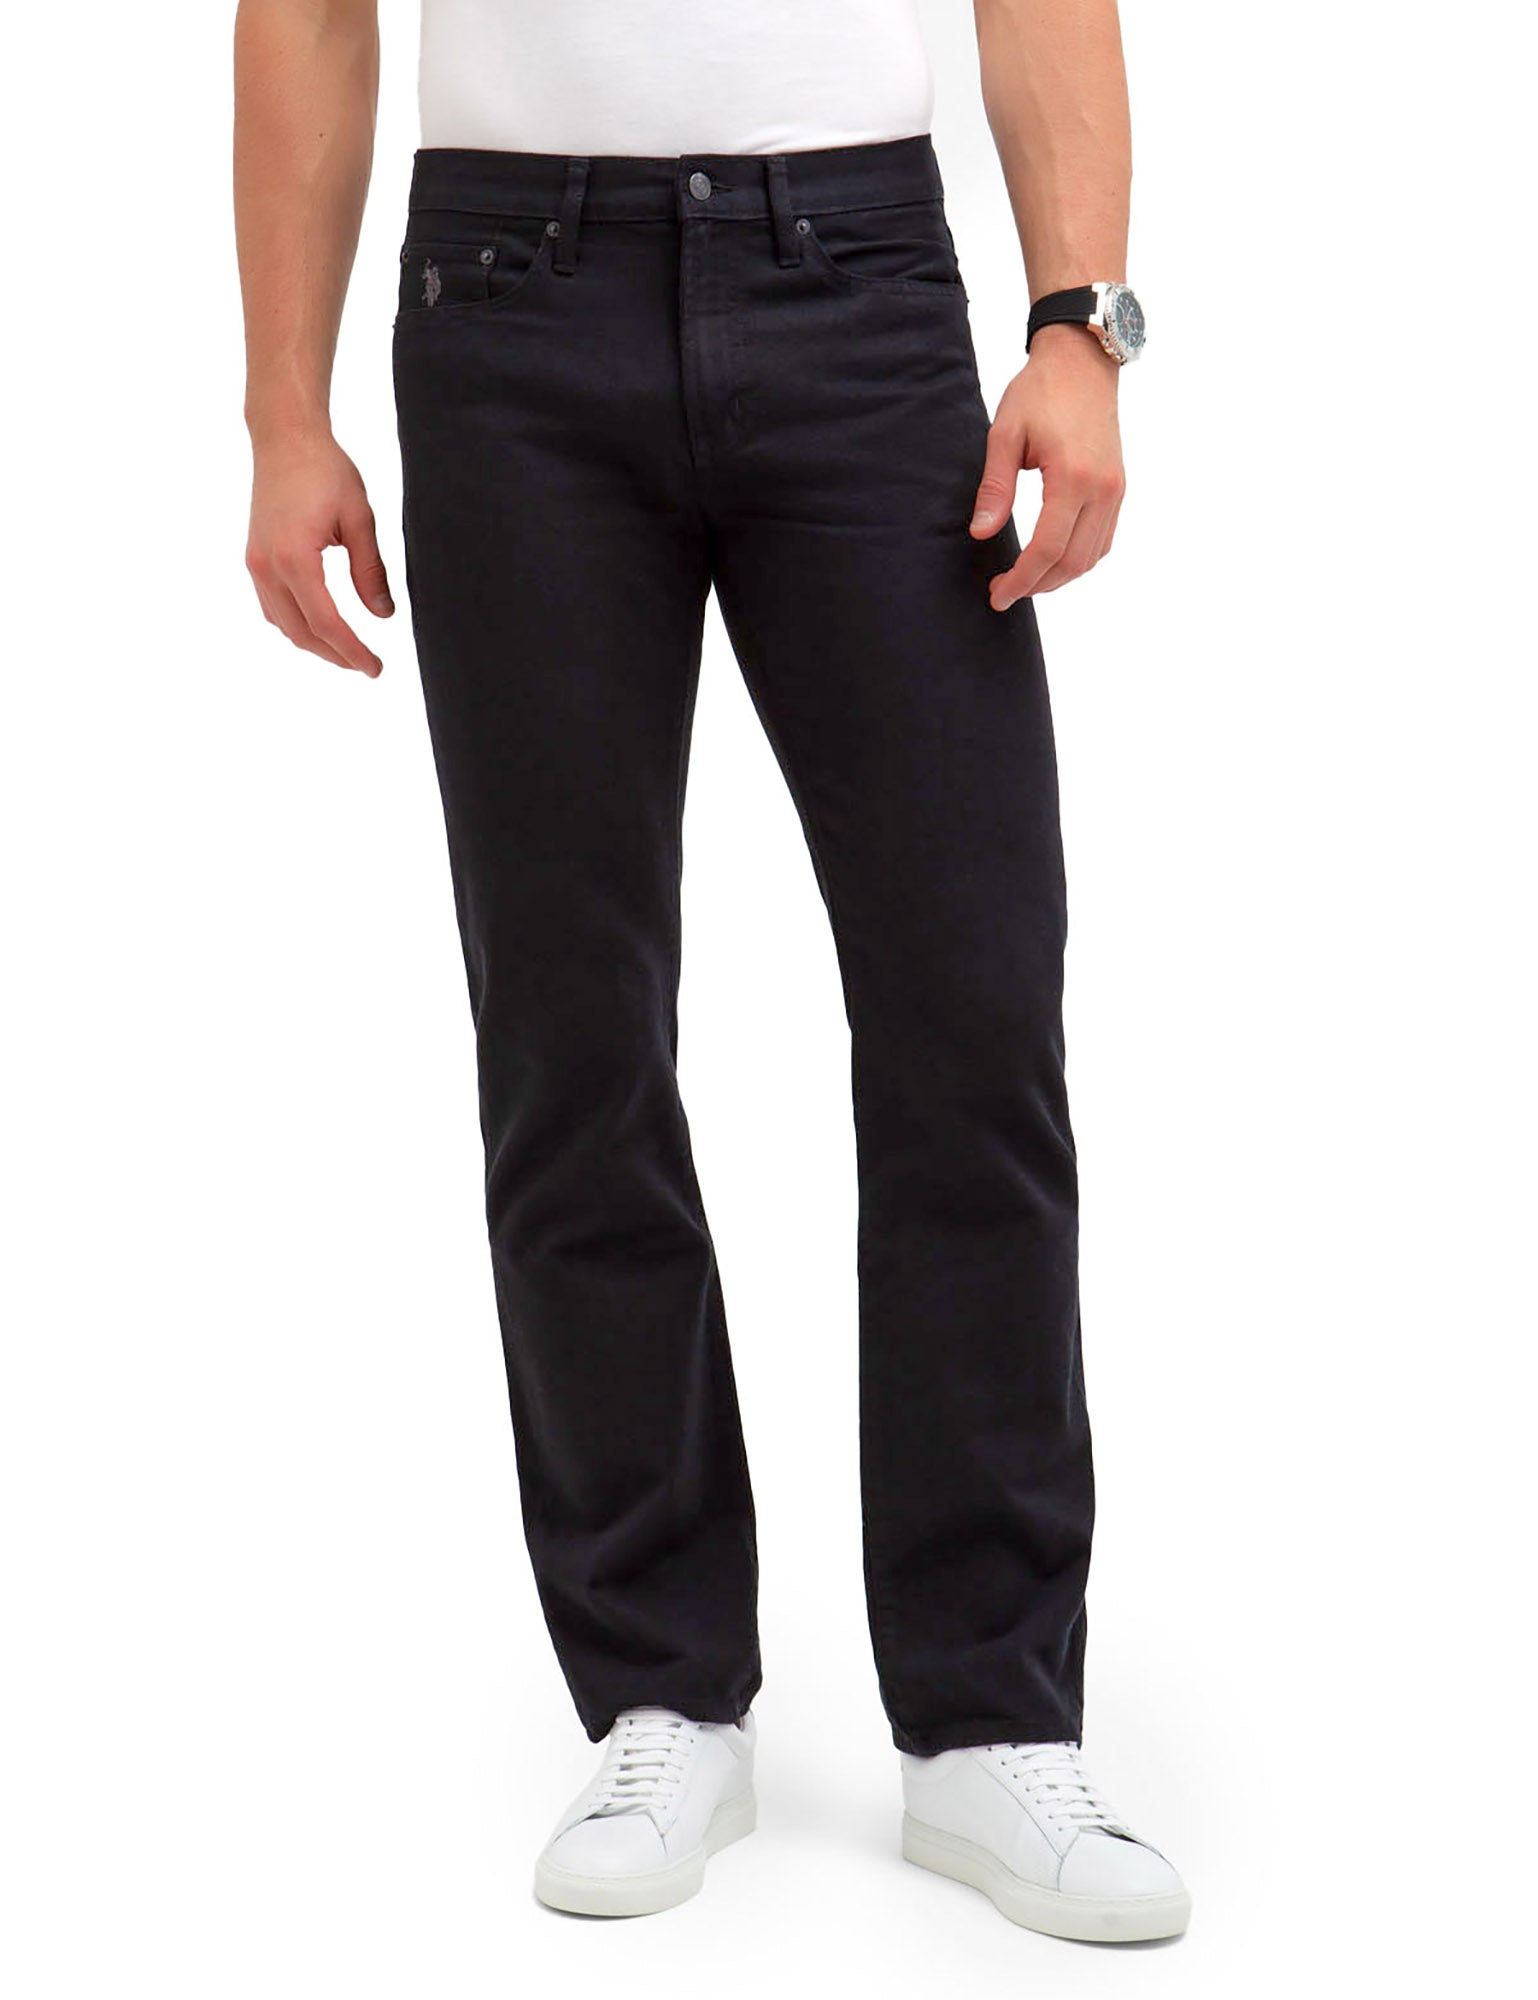 5 POCKET RIGID STRAIGHT FIT JEANS